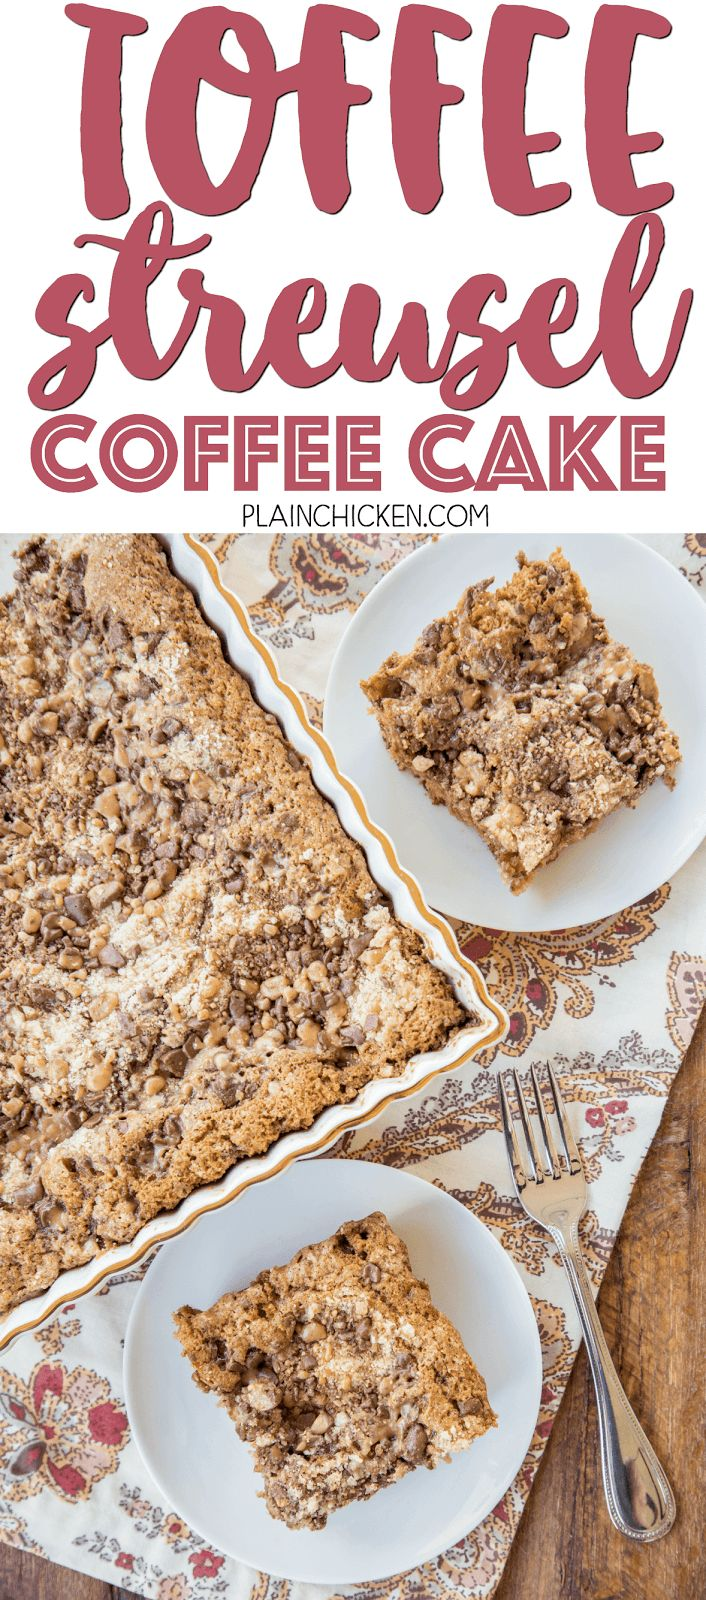 Toffee Streusel Coffee Cake - CRAZY good!! Our favorite coffee cake recipe! Great for breakfast, brunch, tailgating, potlucks, and even dessert! Can make ahead of time and store in an air-tight container. Flour, brown sugar, sugar, butter, buttermilk, egg, vanilla and chocolate toffee bits. YUM! Everyone RAVES about this yummy coffee cake!